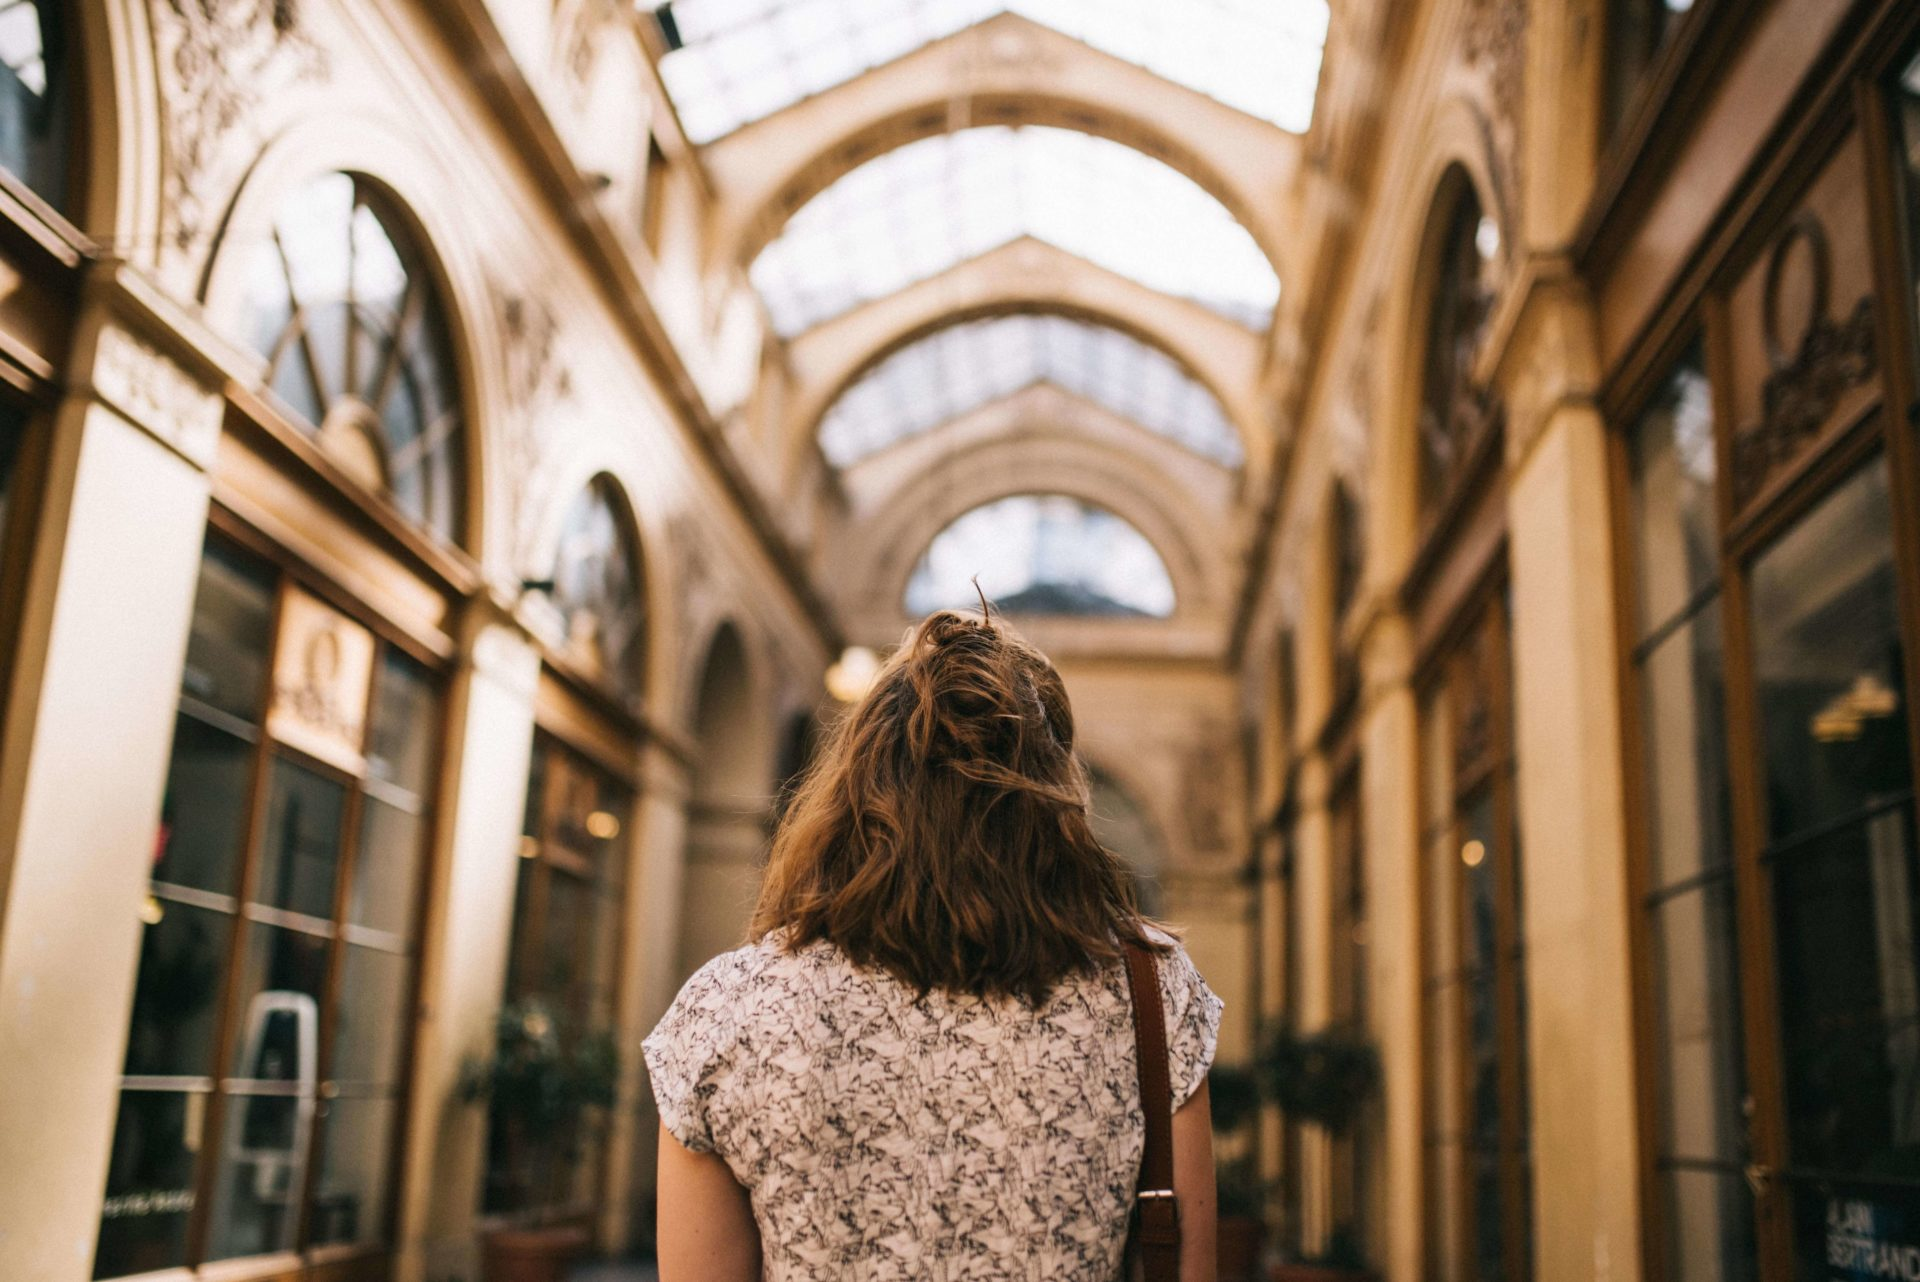 Woman staring at the atrium roof filled with windows